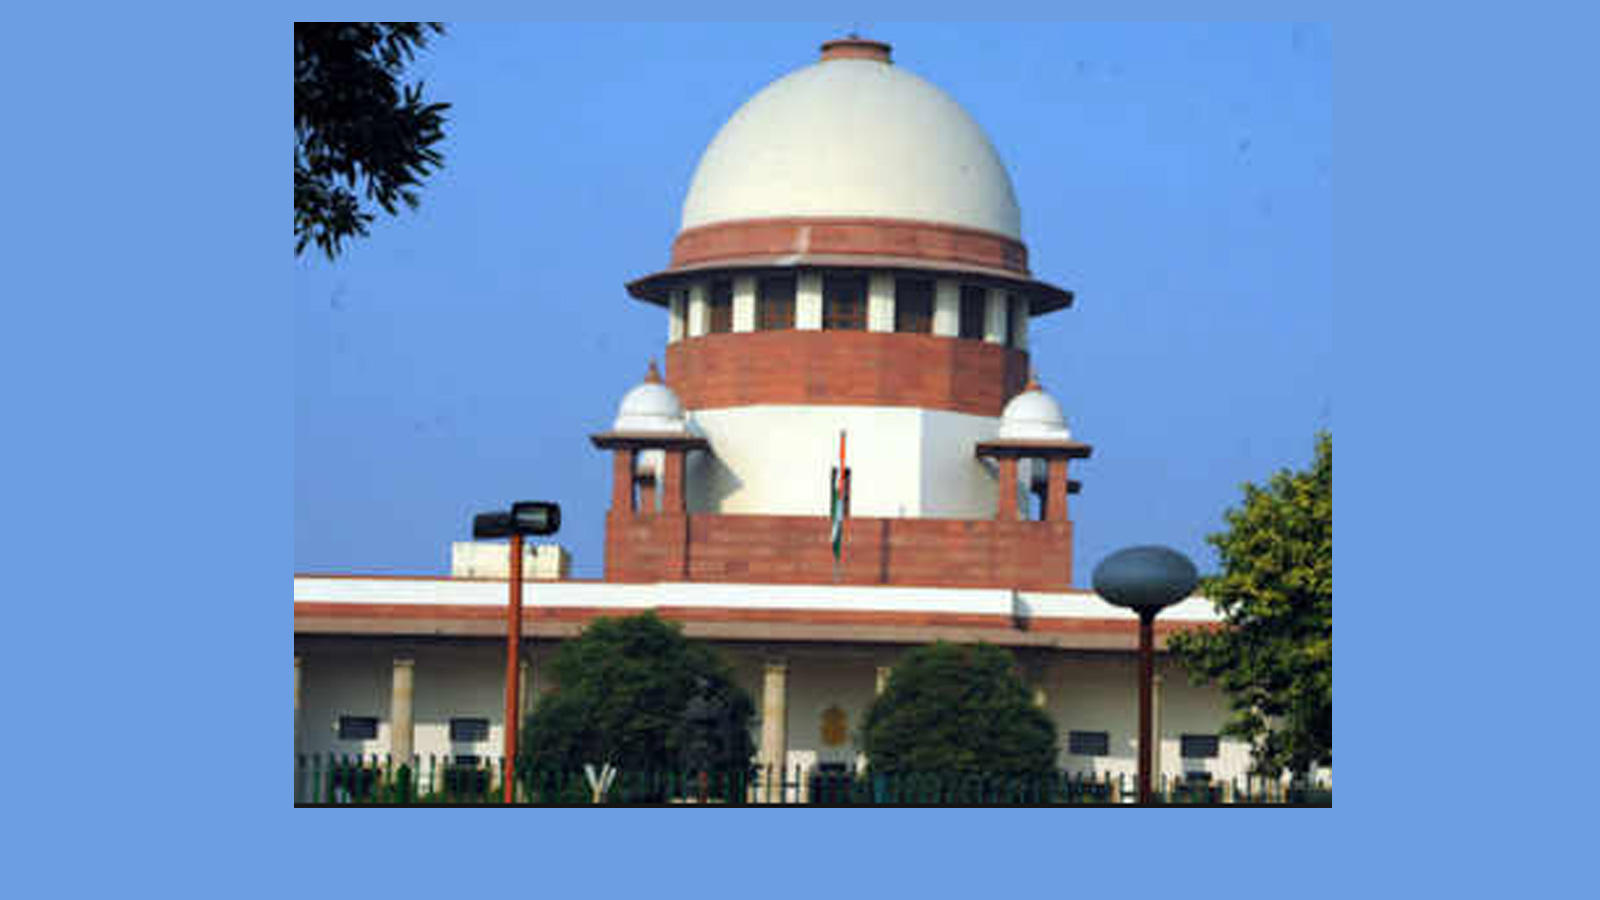 government-clears-names-of-4-judges-for-elevation-to-supreme-court-sources